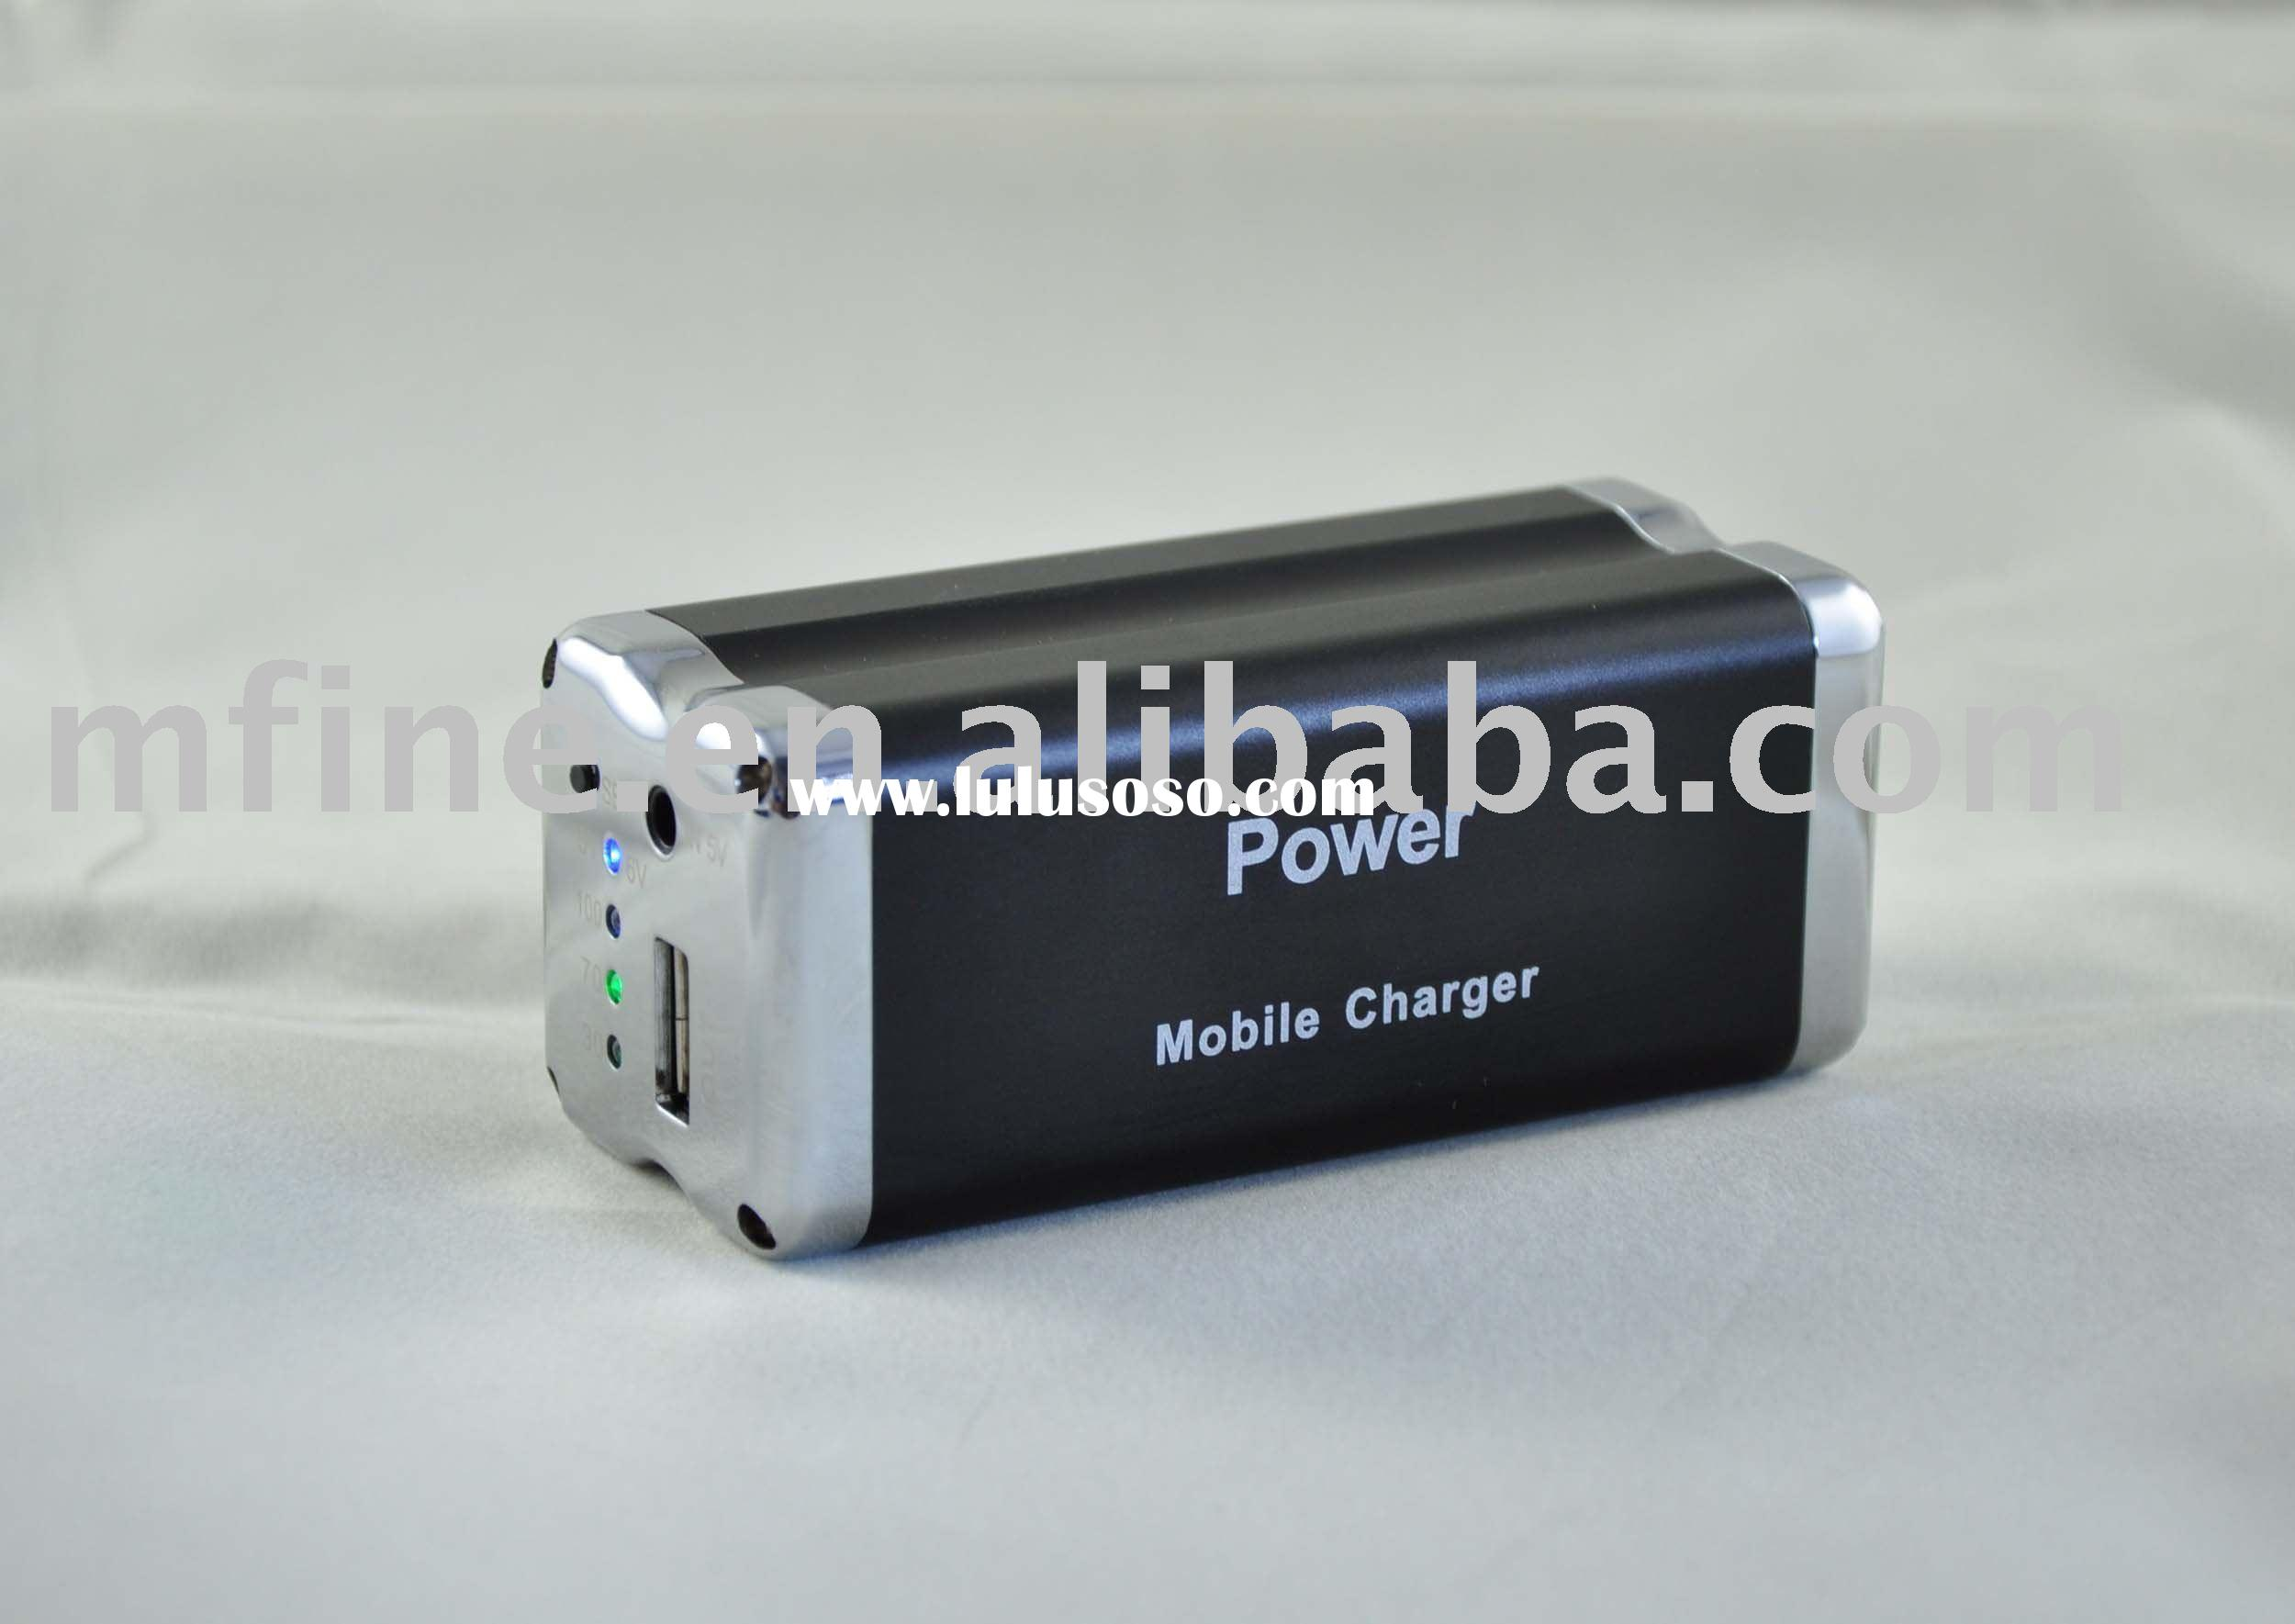 9000mAh 5V / 6V Universal External battery Pack for iPad / iPhone 3G/3GS/ iPhone 4/ iPod